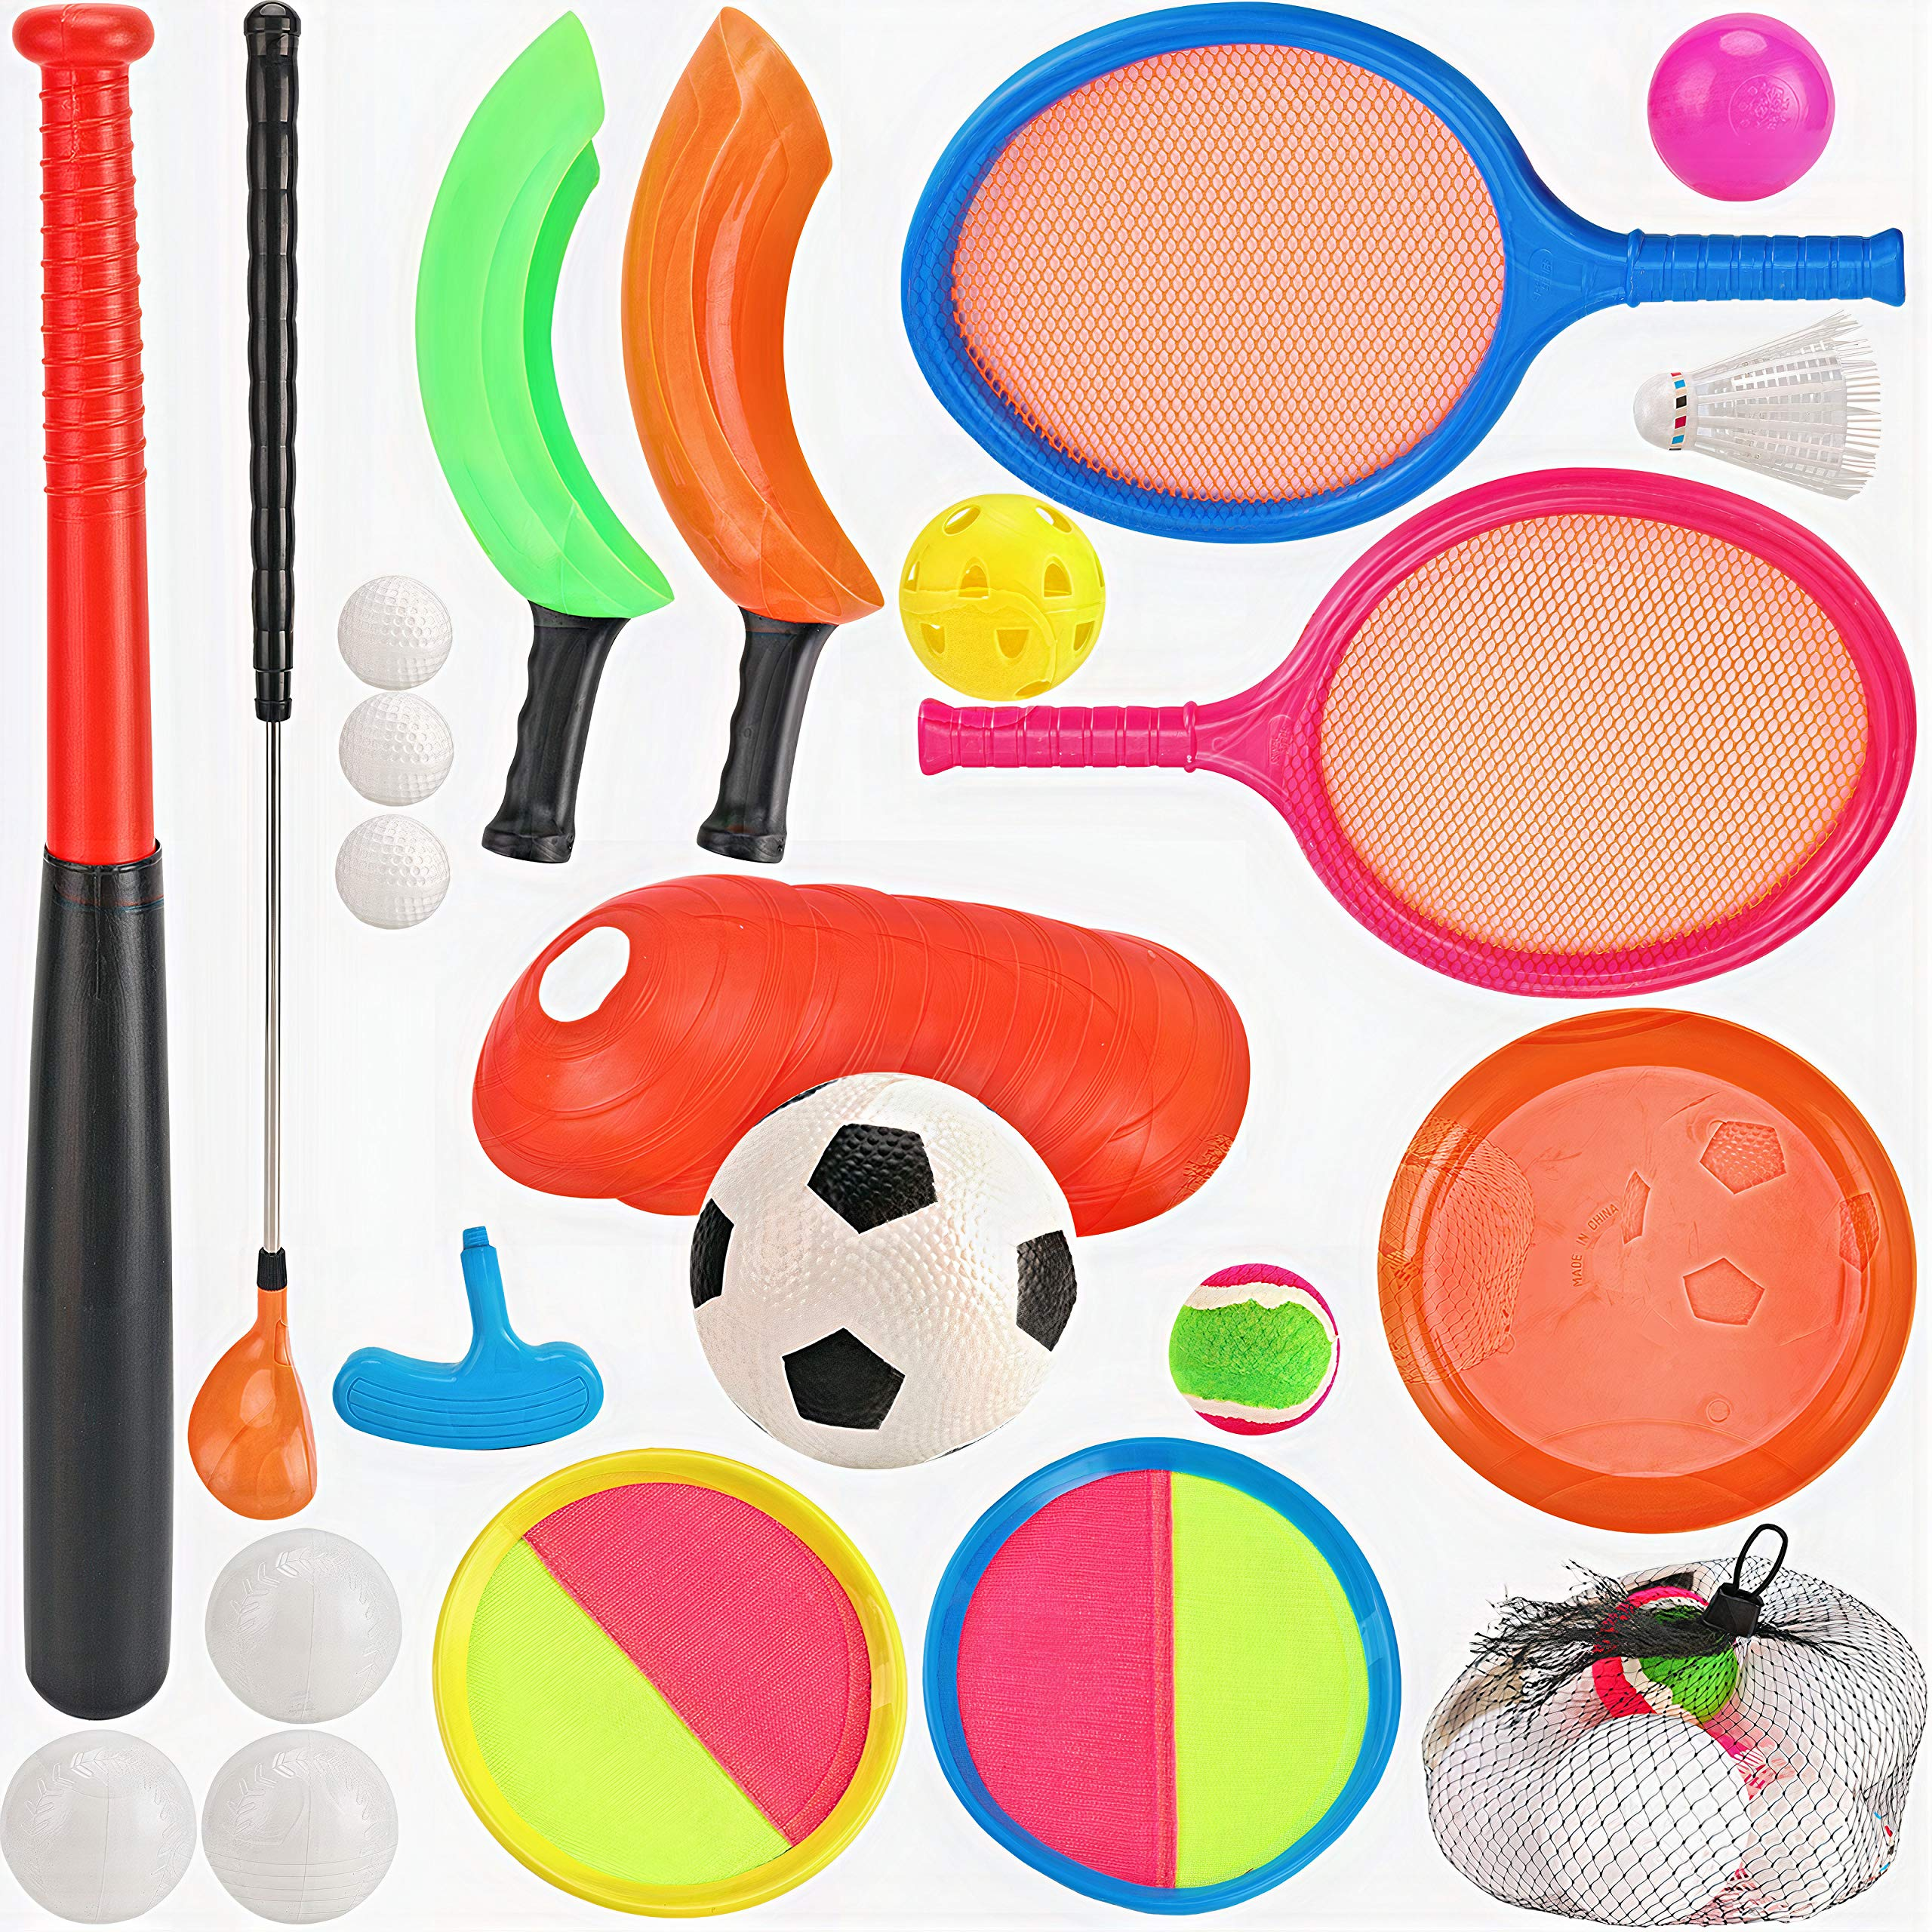 7 in 1 Outdoor Sports Games Combo Multipack Set   Baseball, Golf, Soccer, Badminton, Scoop Ball, Paddle Toss and Catch Ball, Flying Disc   Outdoor Play Toys for Kids